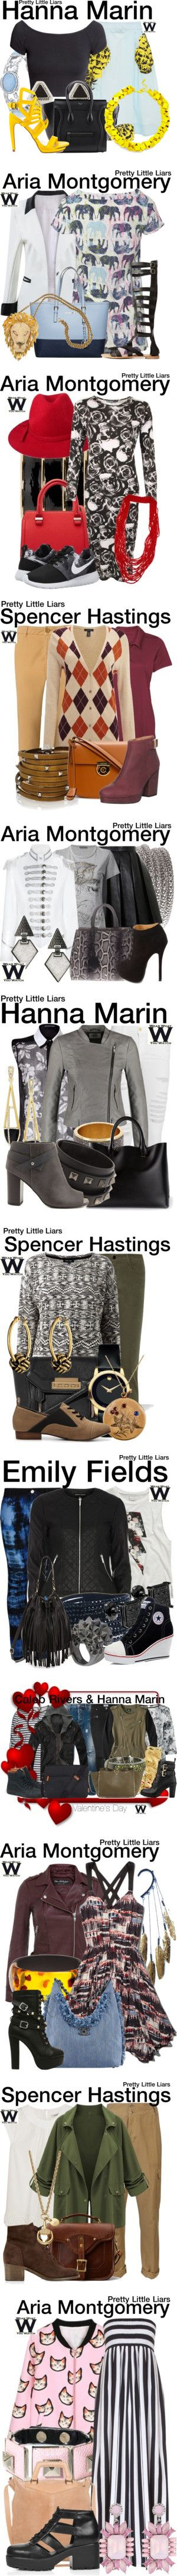 """""""Pretty Little Liars - More Inspirations From"""" by wearwhatyouwatch ❤ liked on Polyvore"""